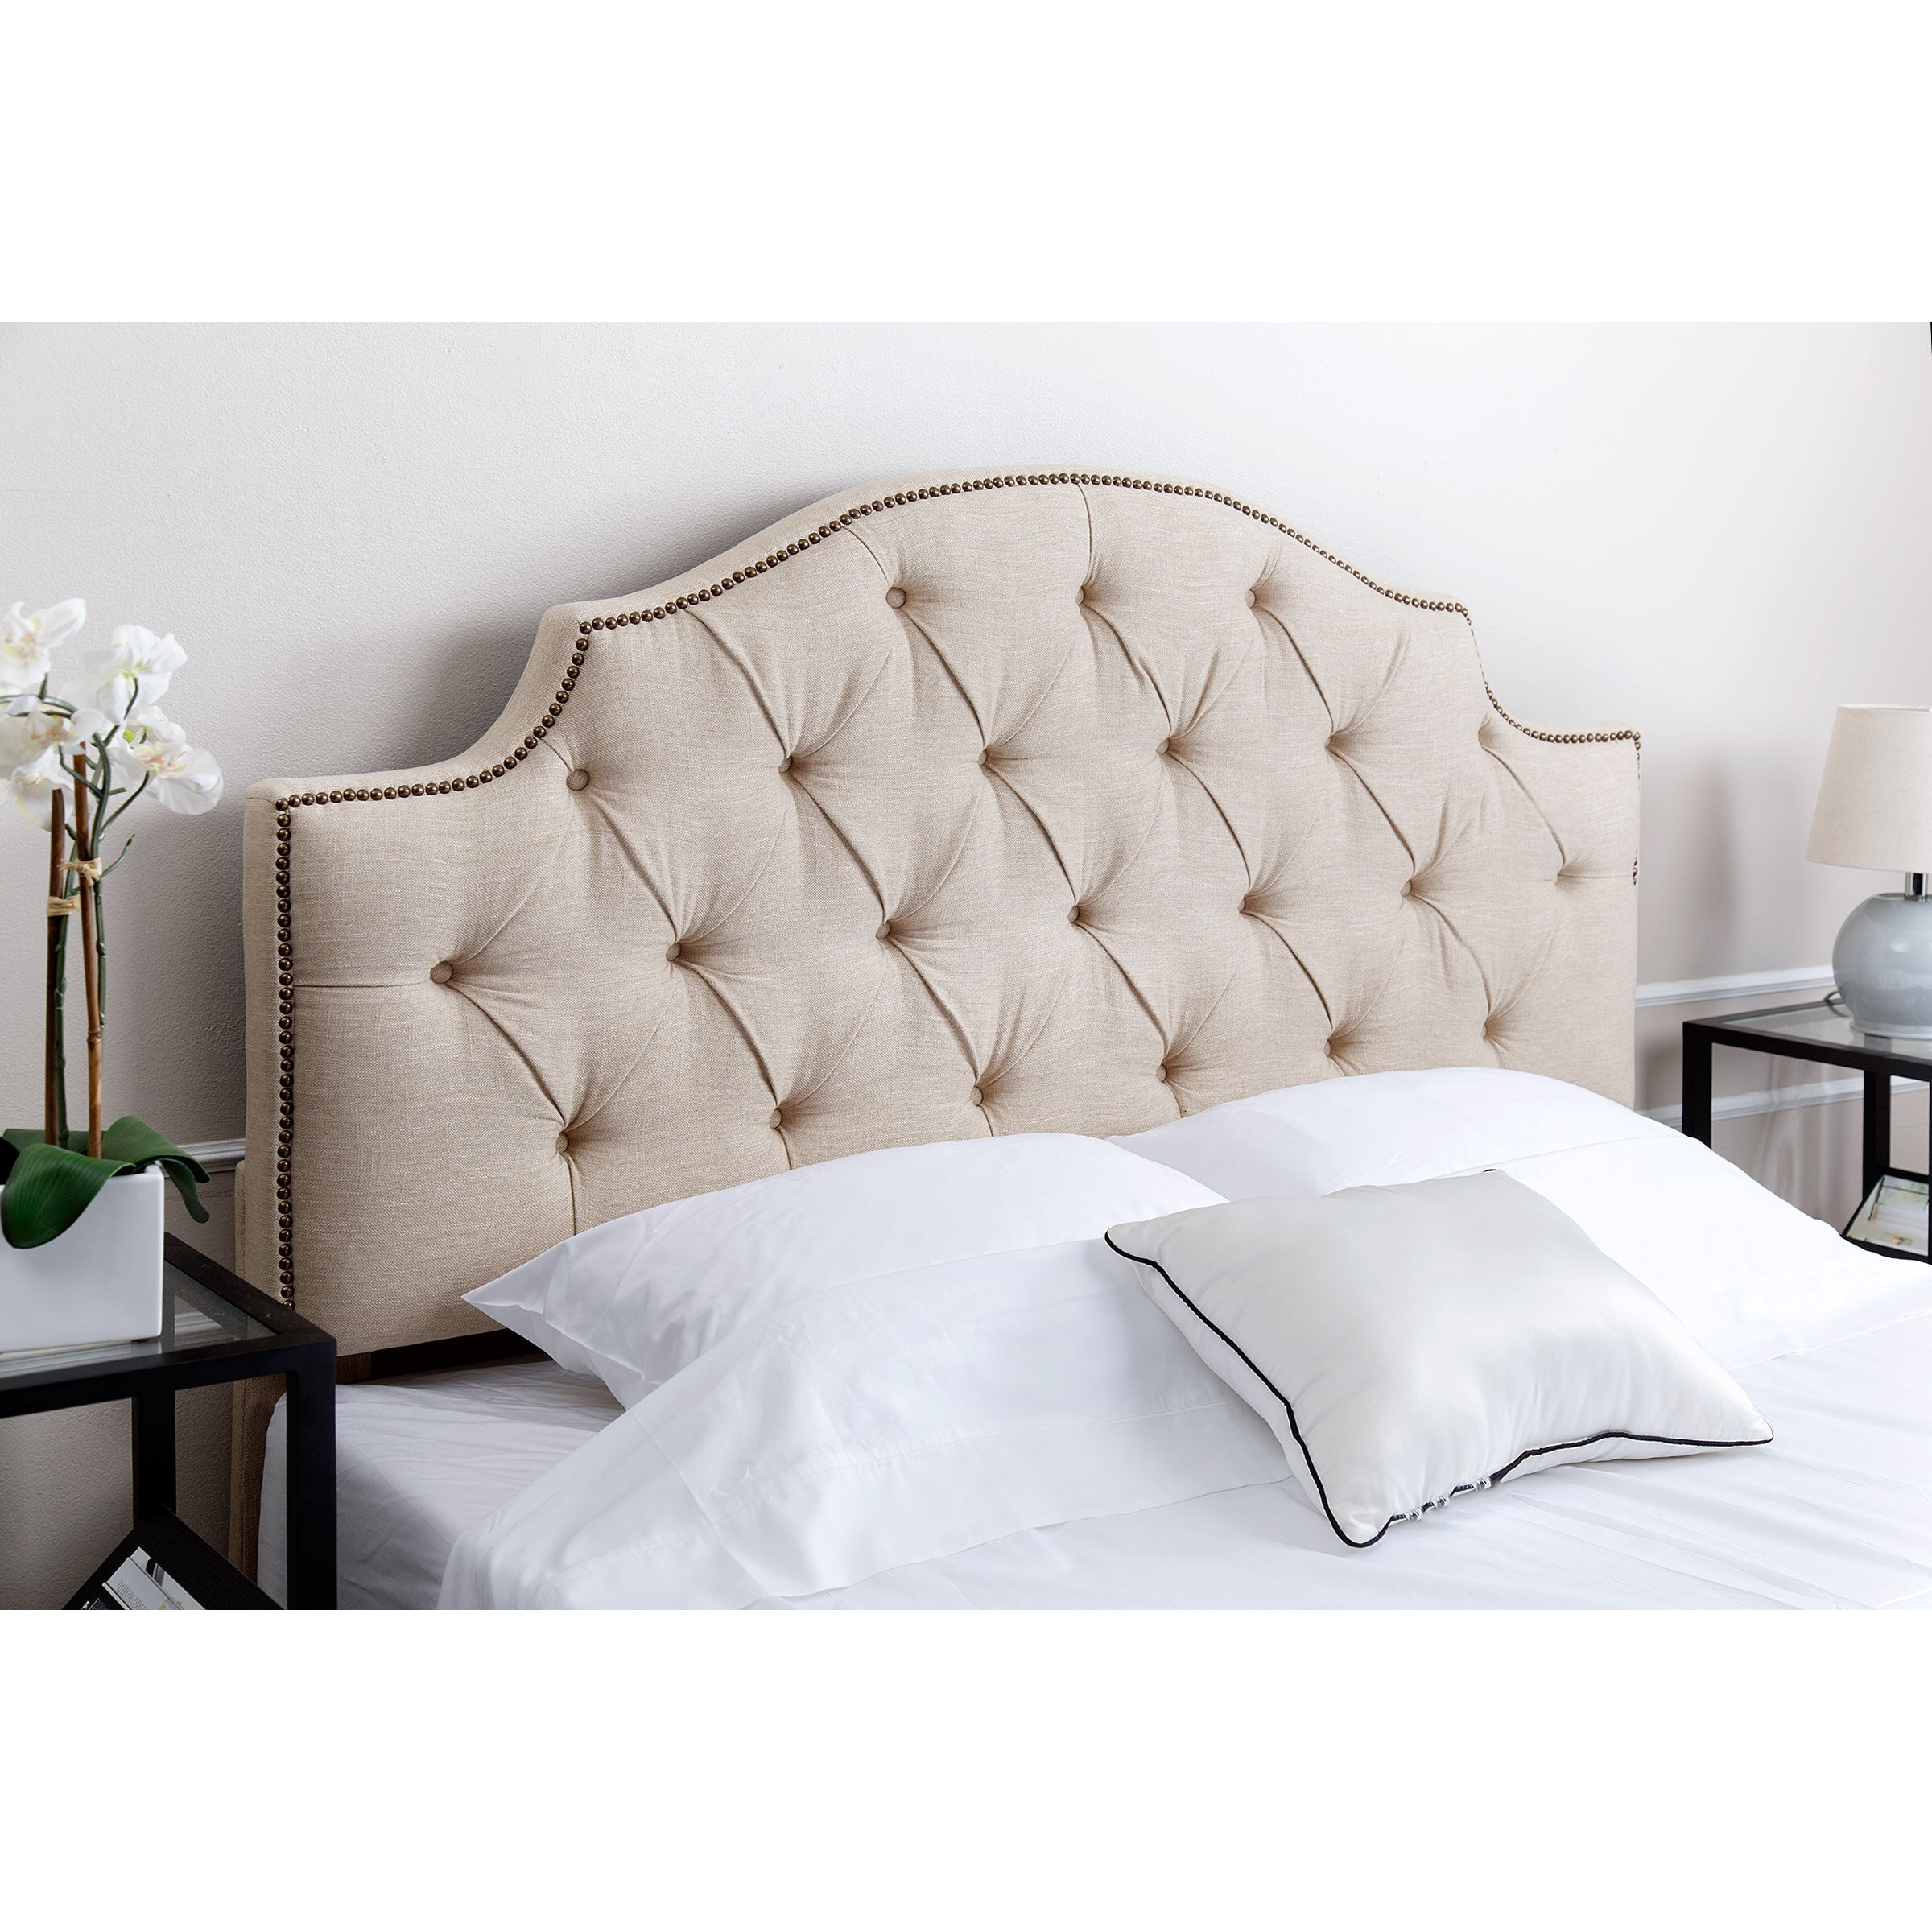 Darby Home Co Cowan Full/Queen Upholstered Headboard